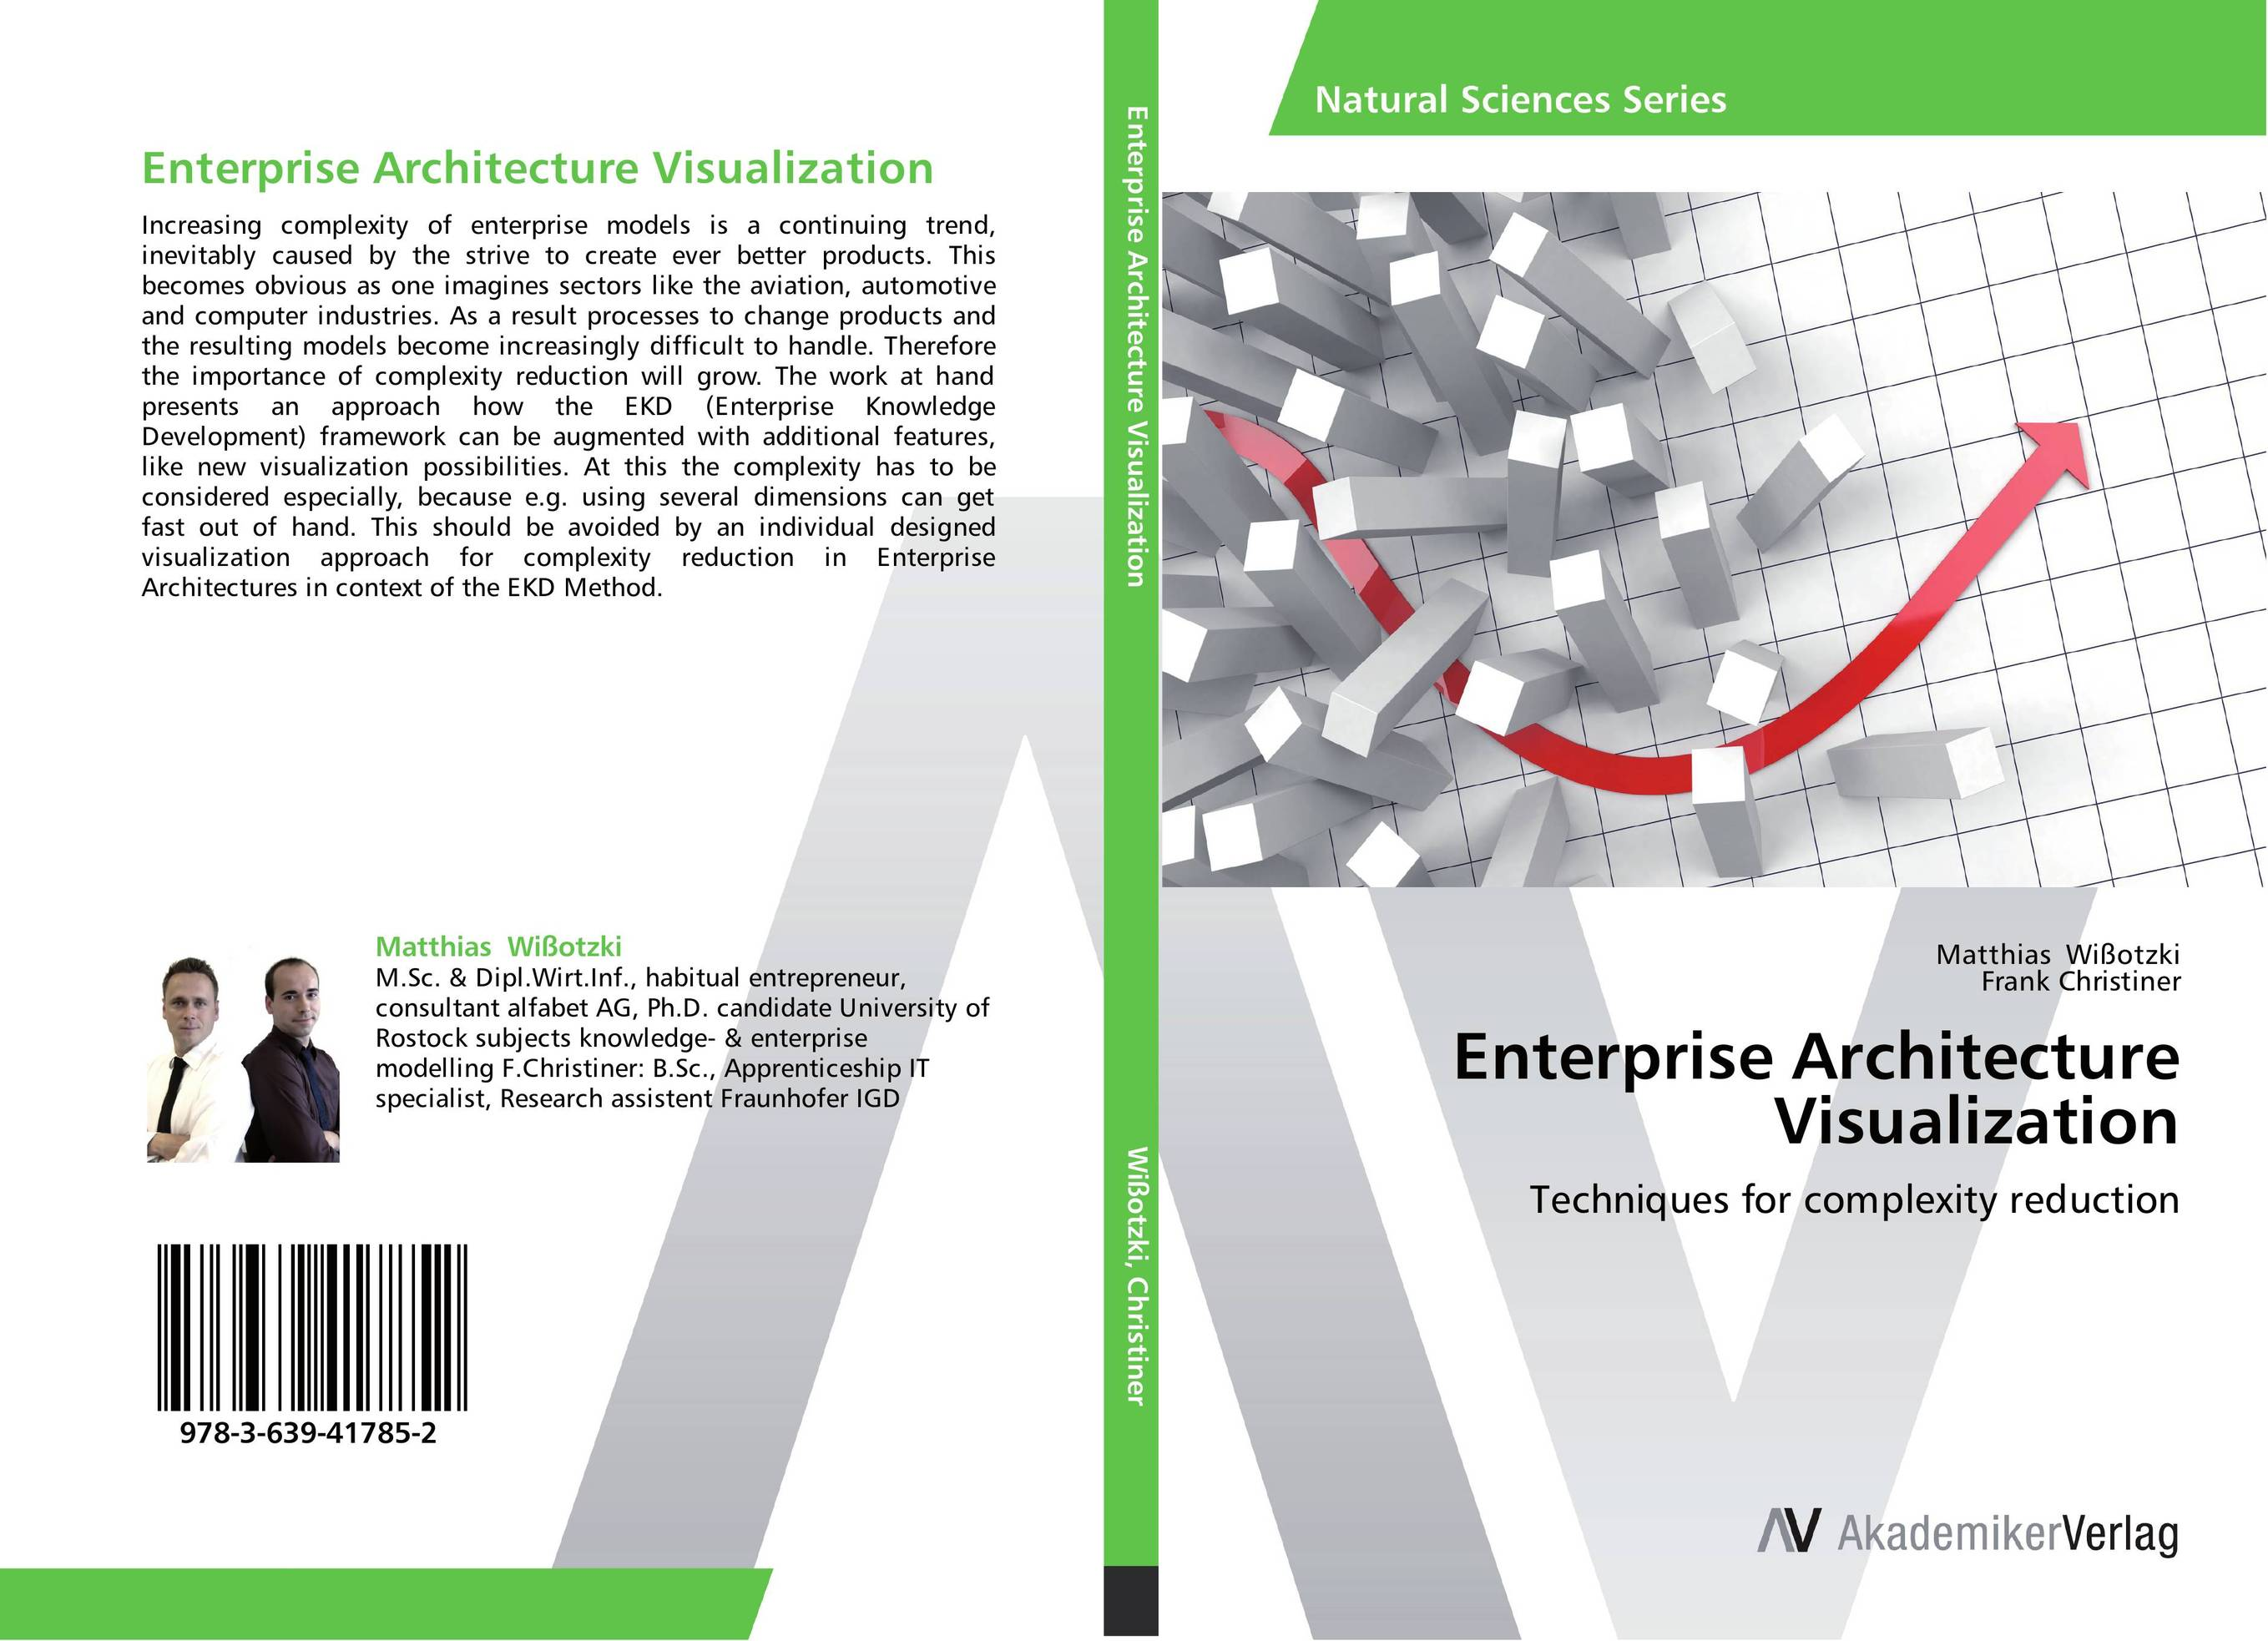 Enterprise Architecture Visualization